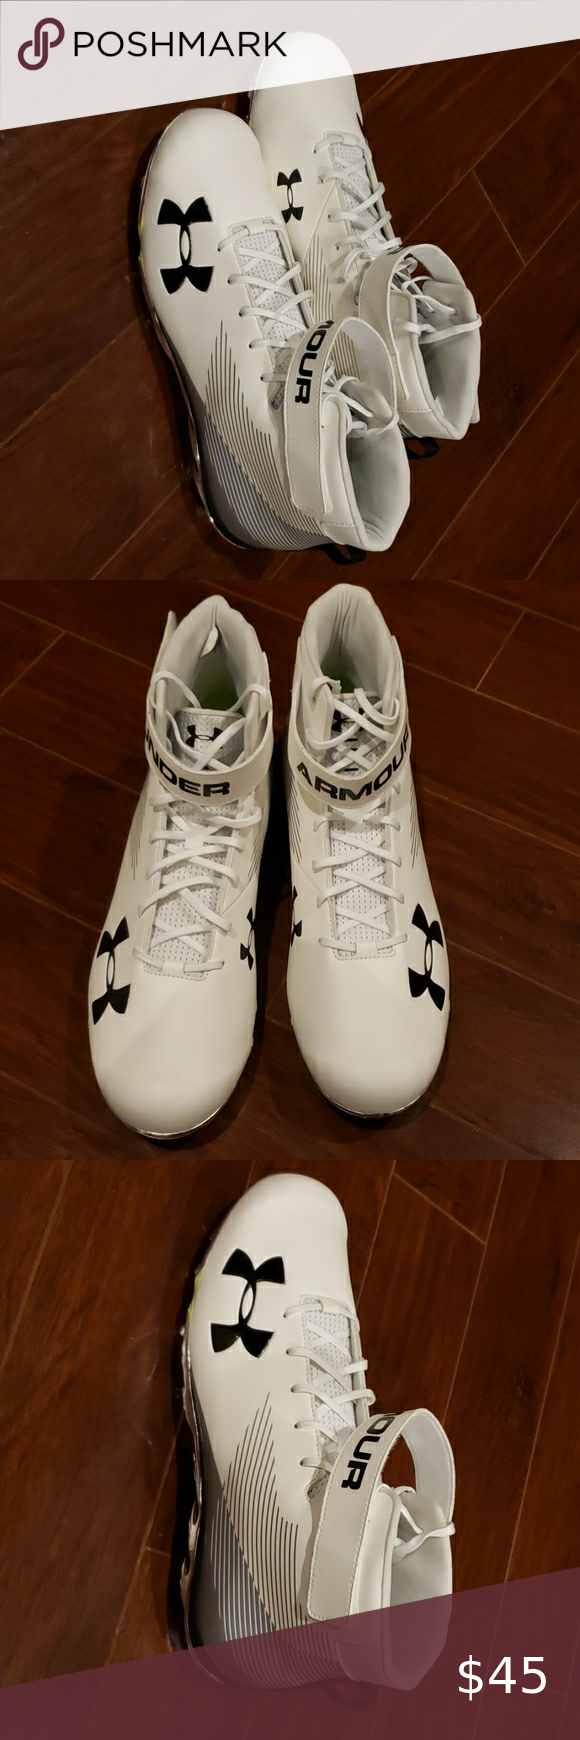 Under Armour Mens Spine Football cleats